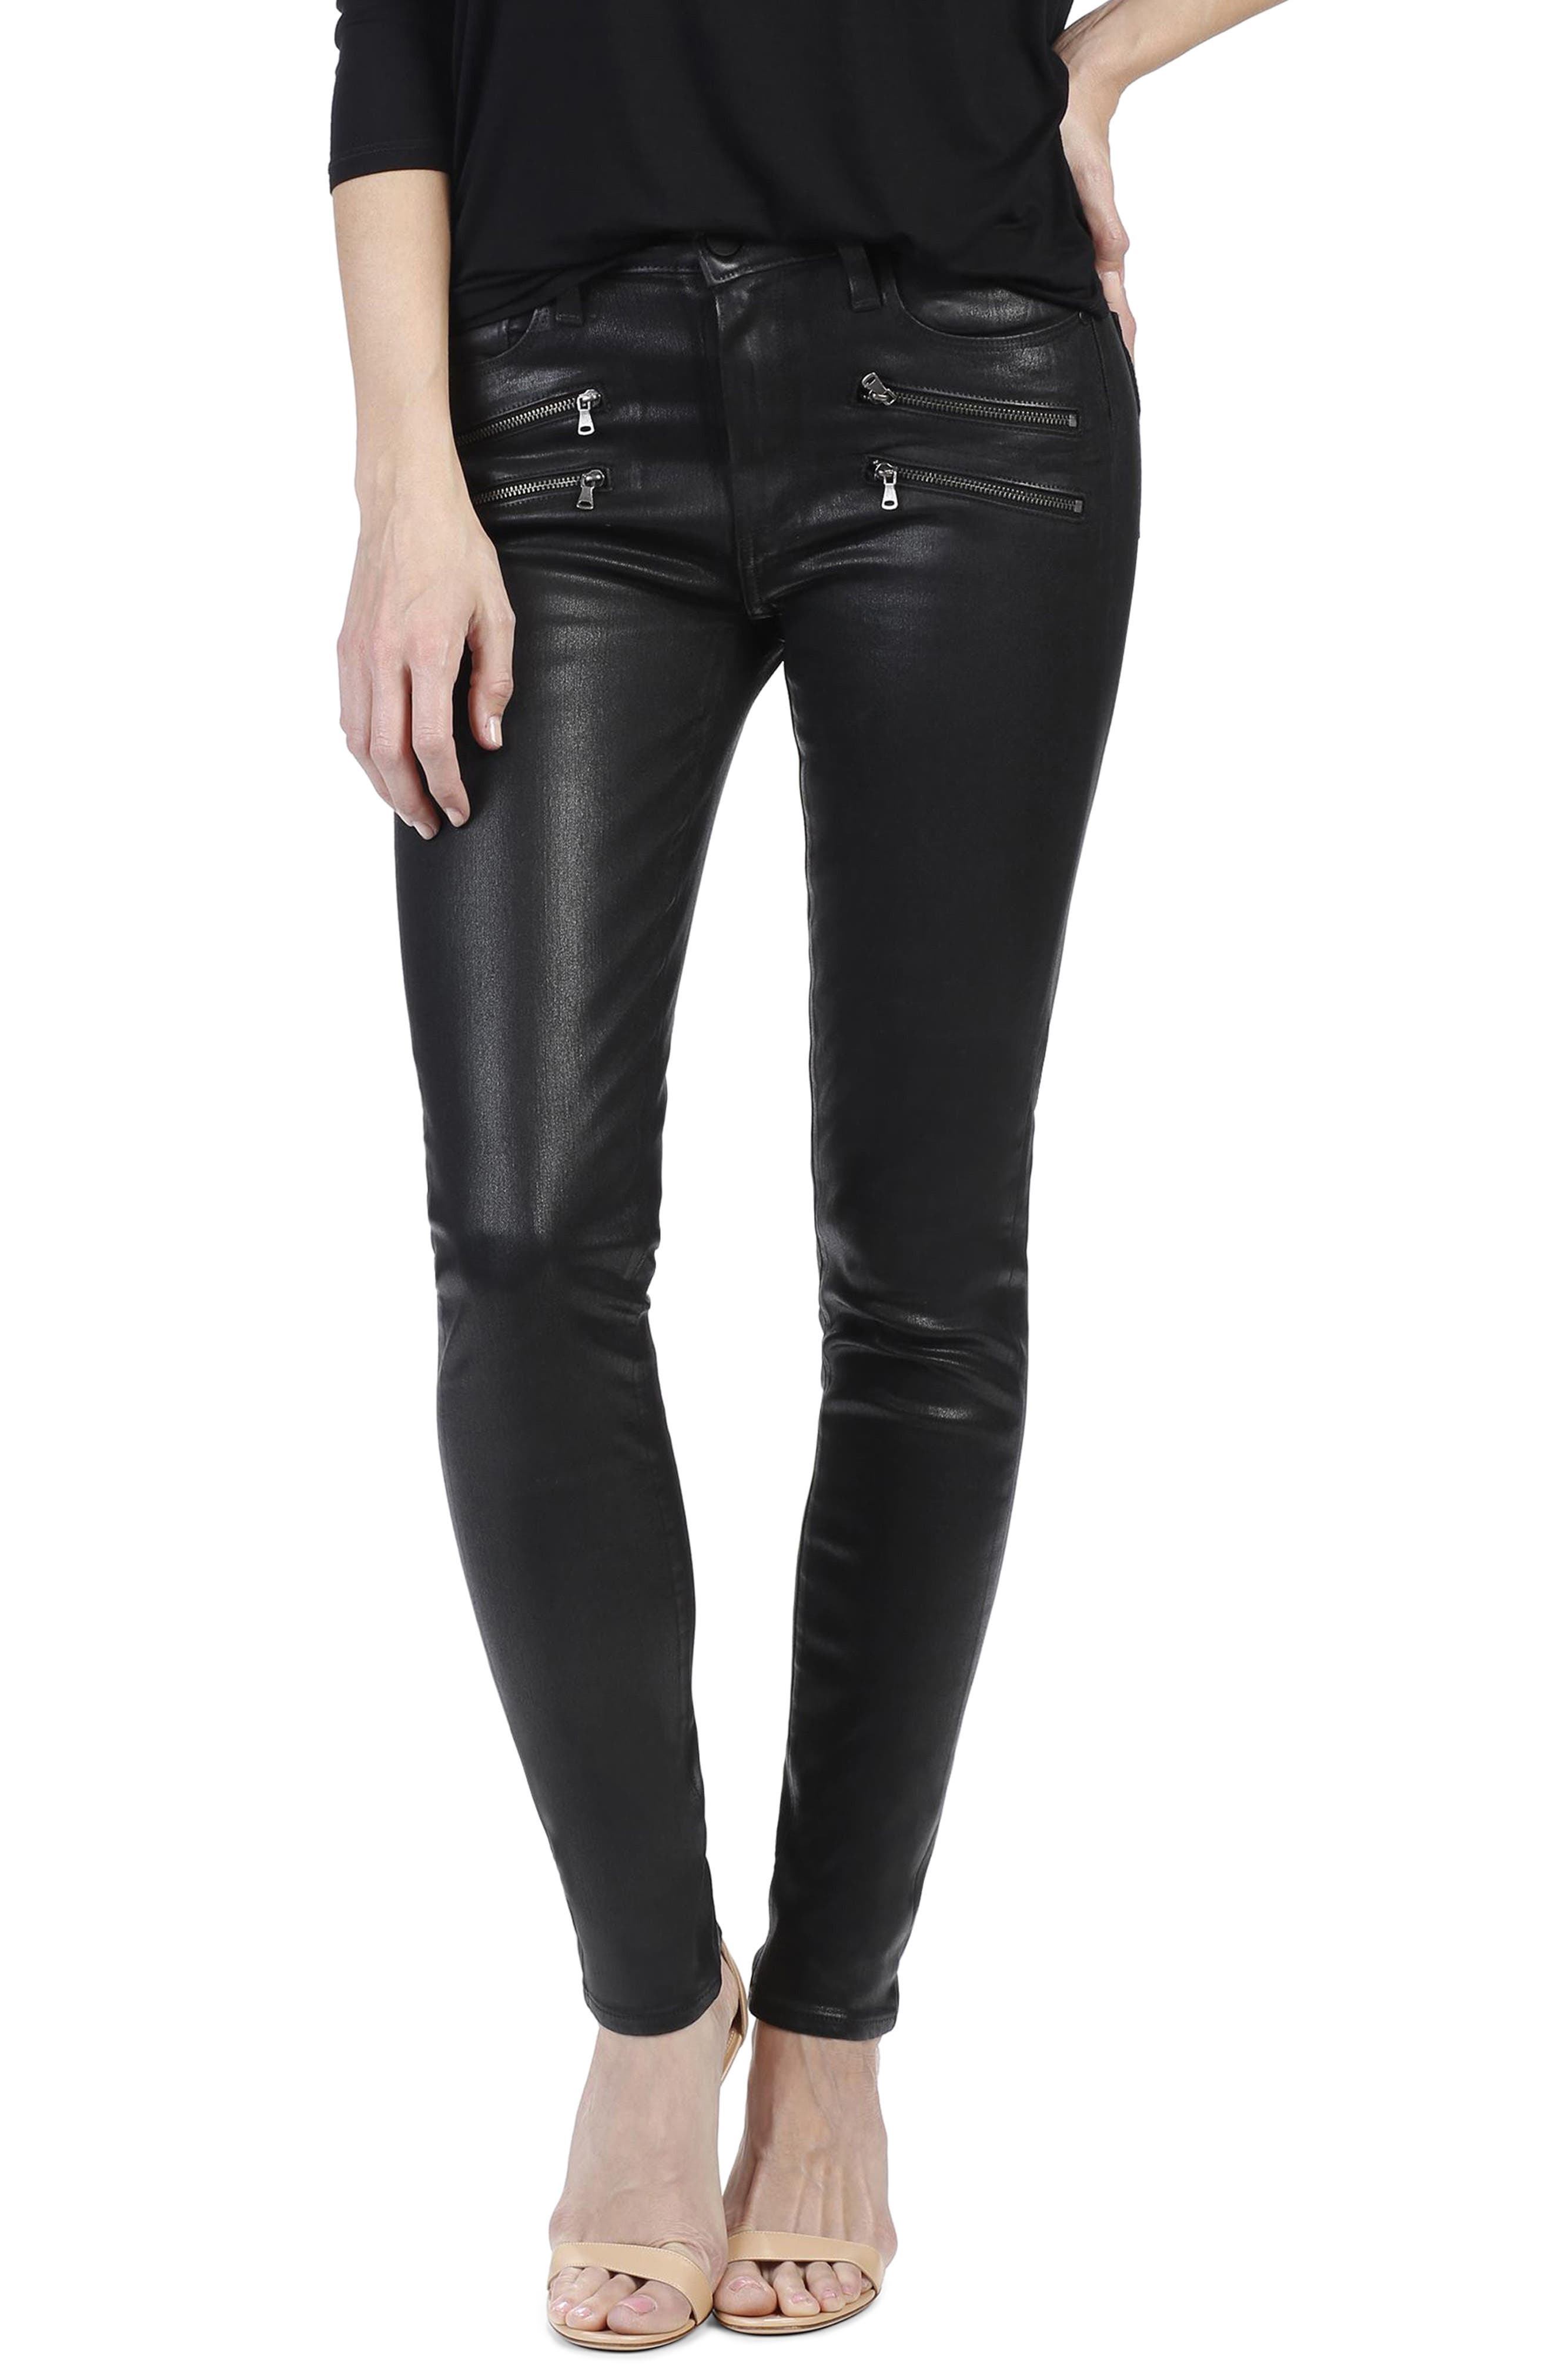 Edgemont Zip Coated High Waist Ultra Skinny Jeans,                         Main,                         color, 001